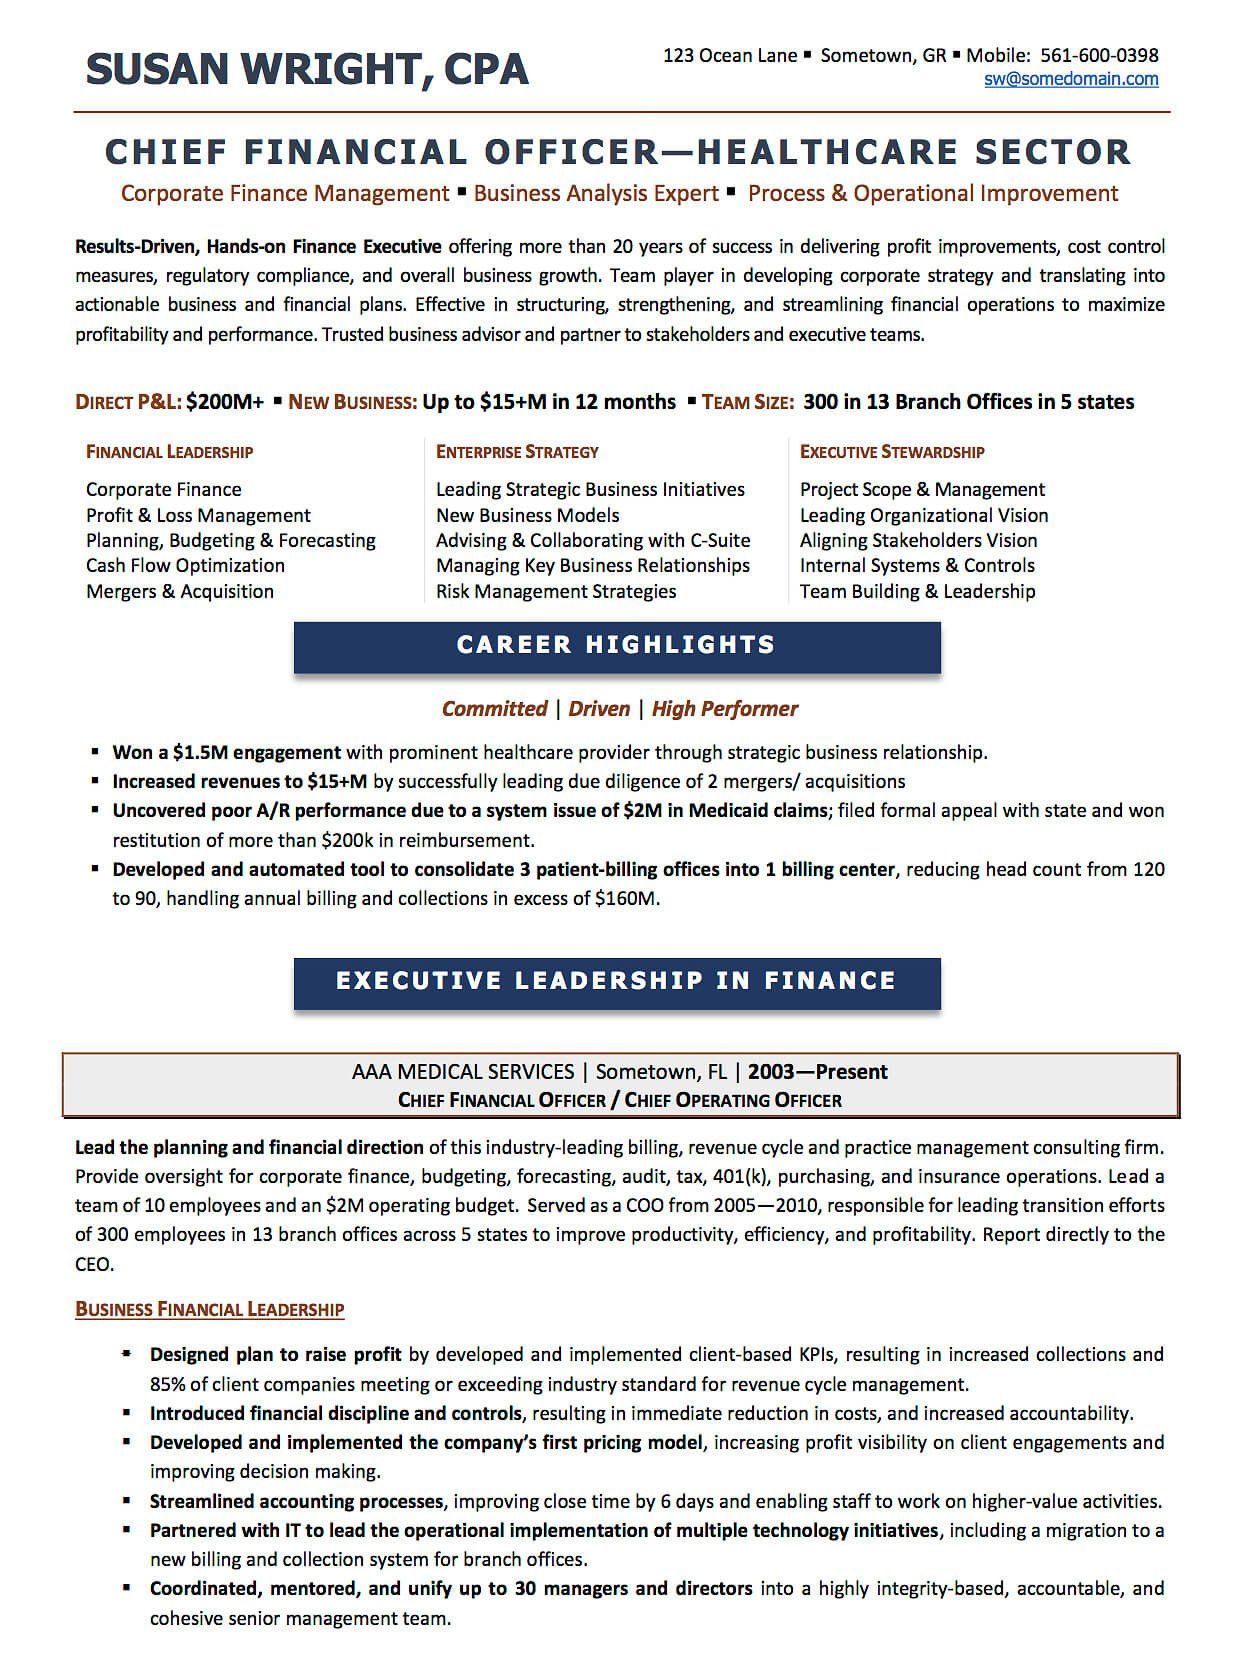 Best Executive Resume Format Resume Examples Cv Sample Resume Templates Rso Resumes